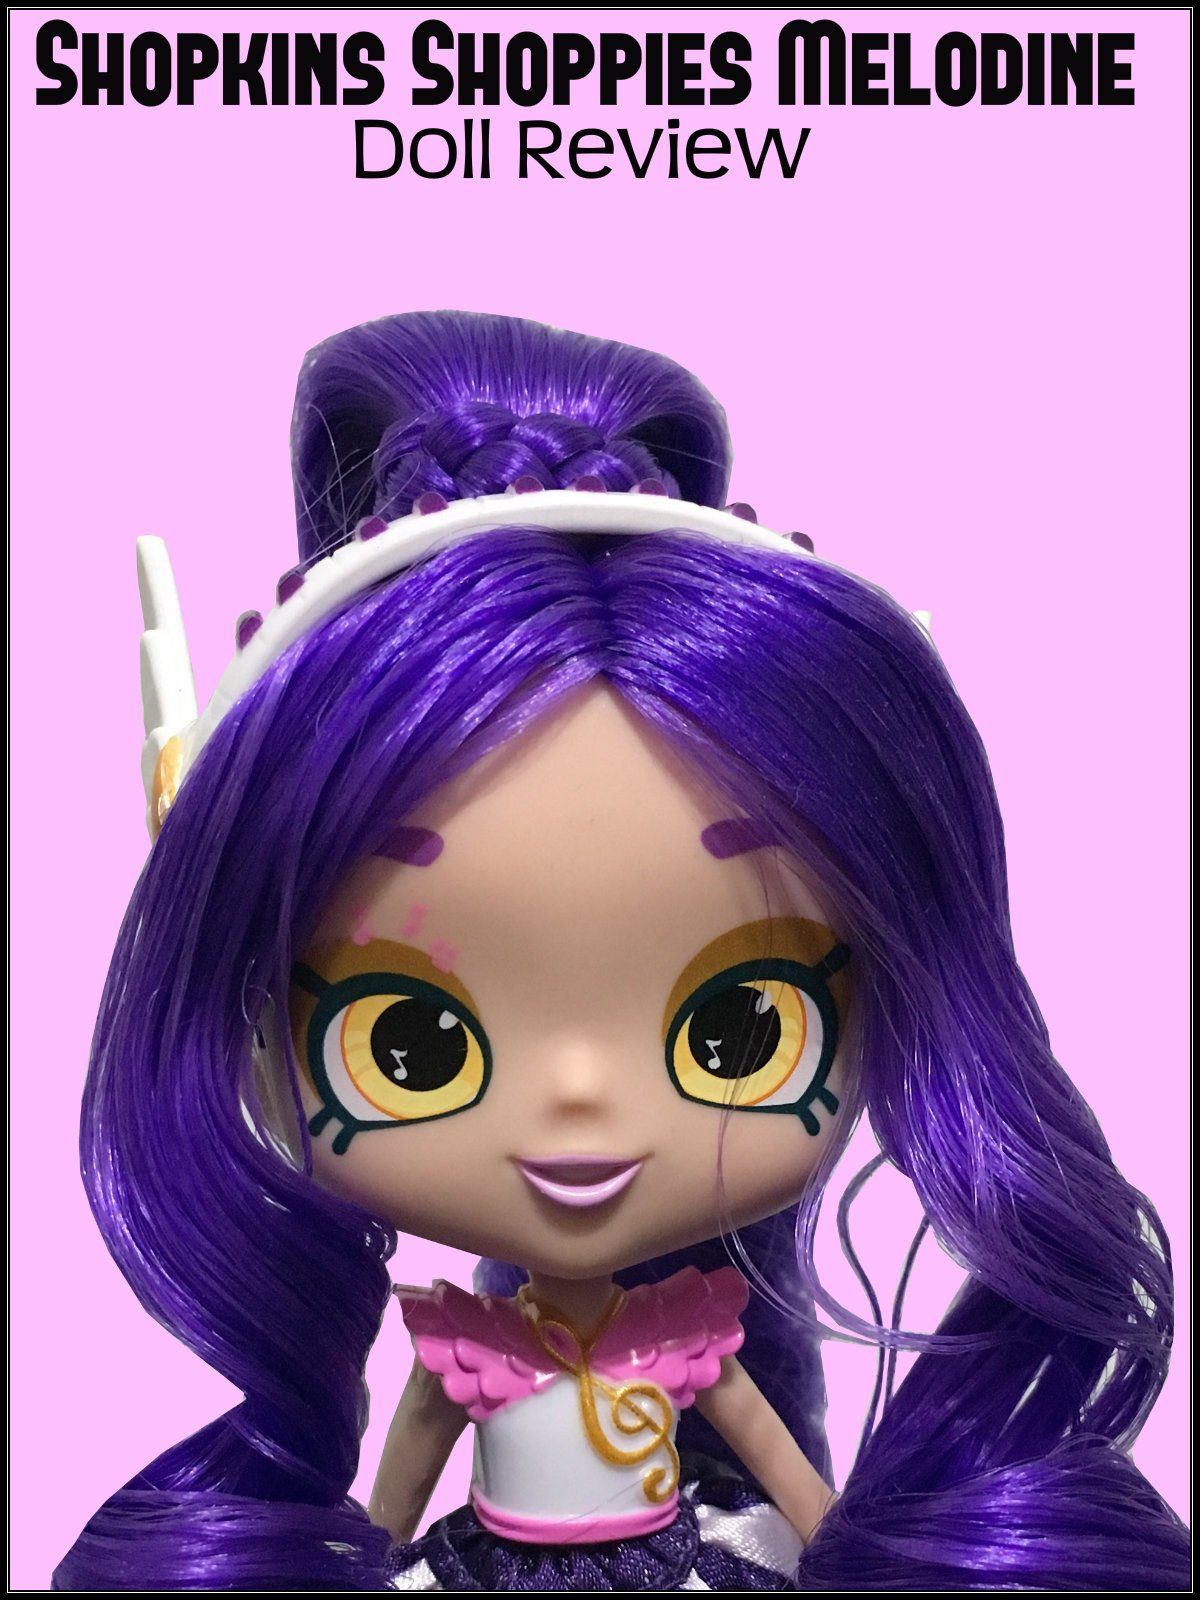 Review: Shopkins Shoppies Melodine Doll Review